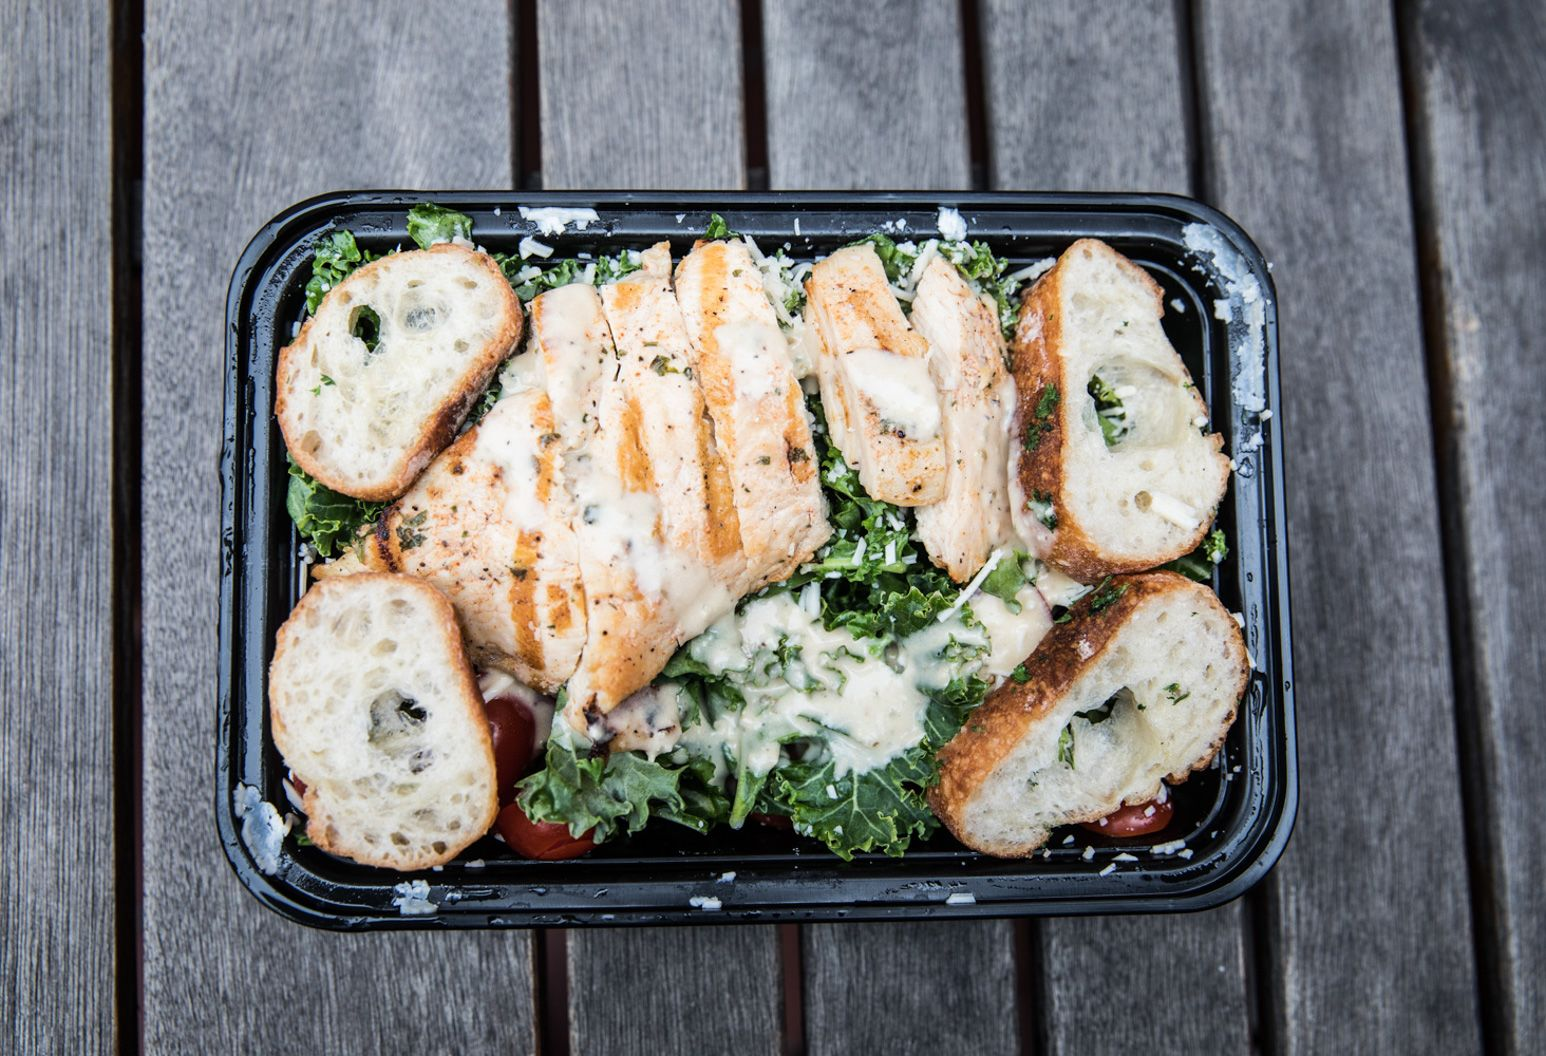 A black plastic container contains sliced grilled chicken pieces sitting next to small slices of bread over a kale salad with a small amount of white dressing over the top of the dish.